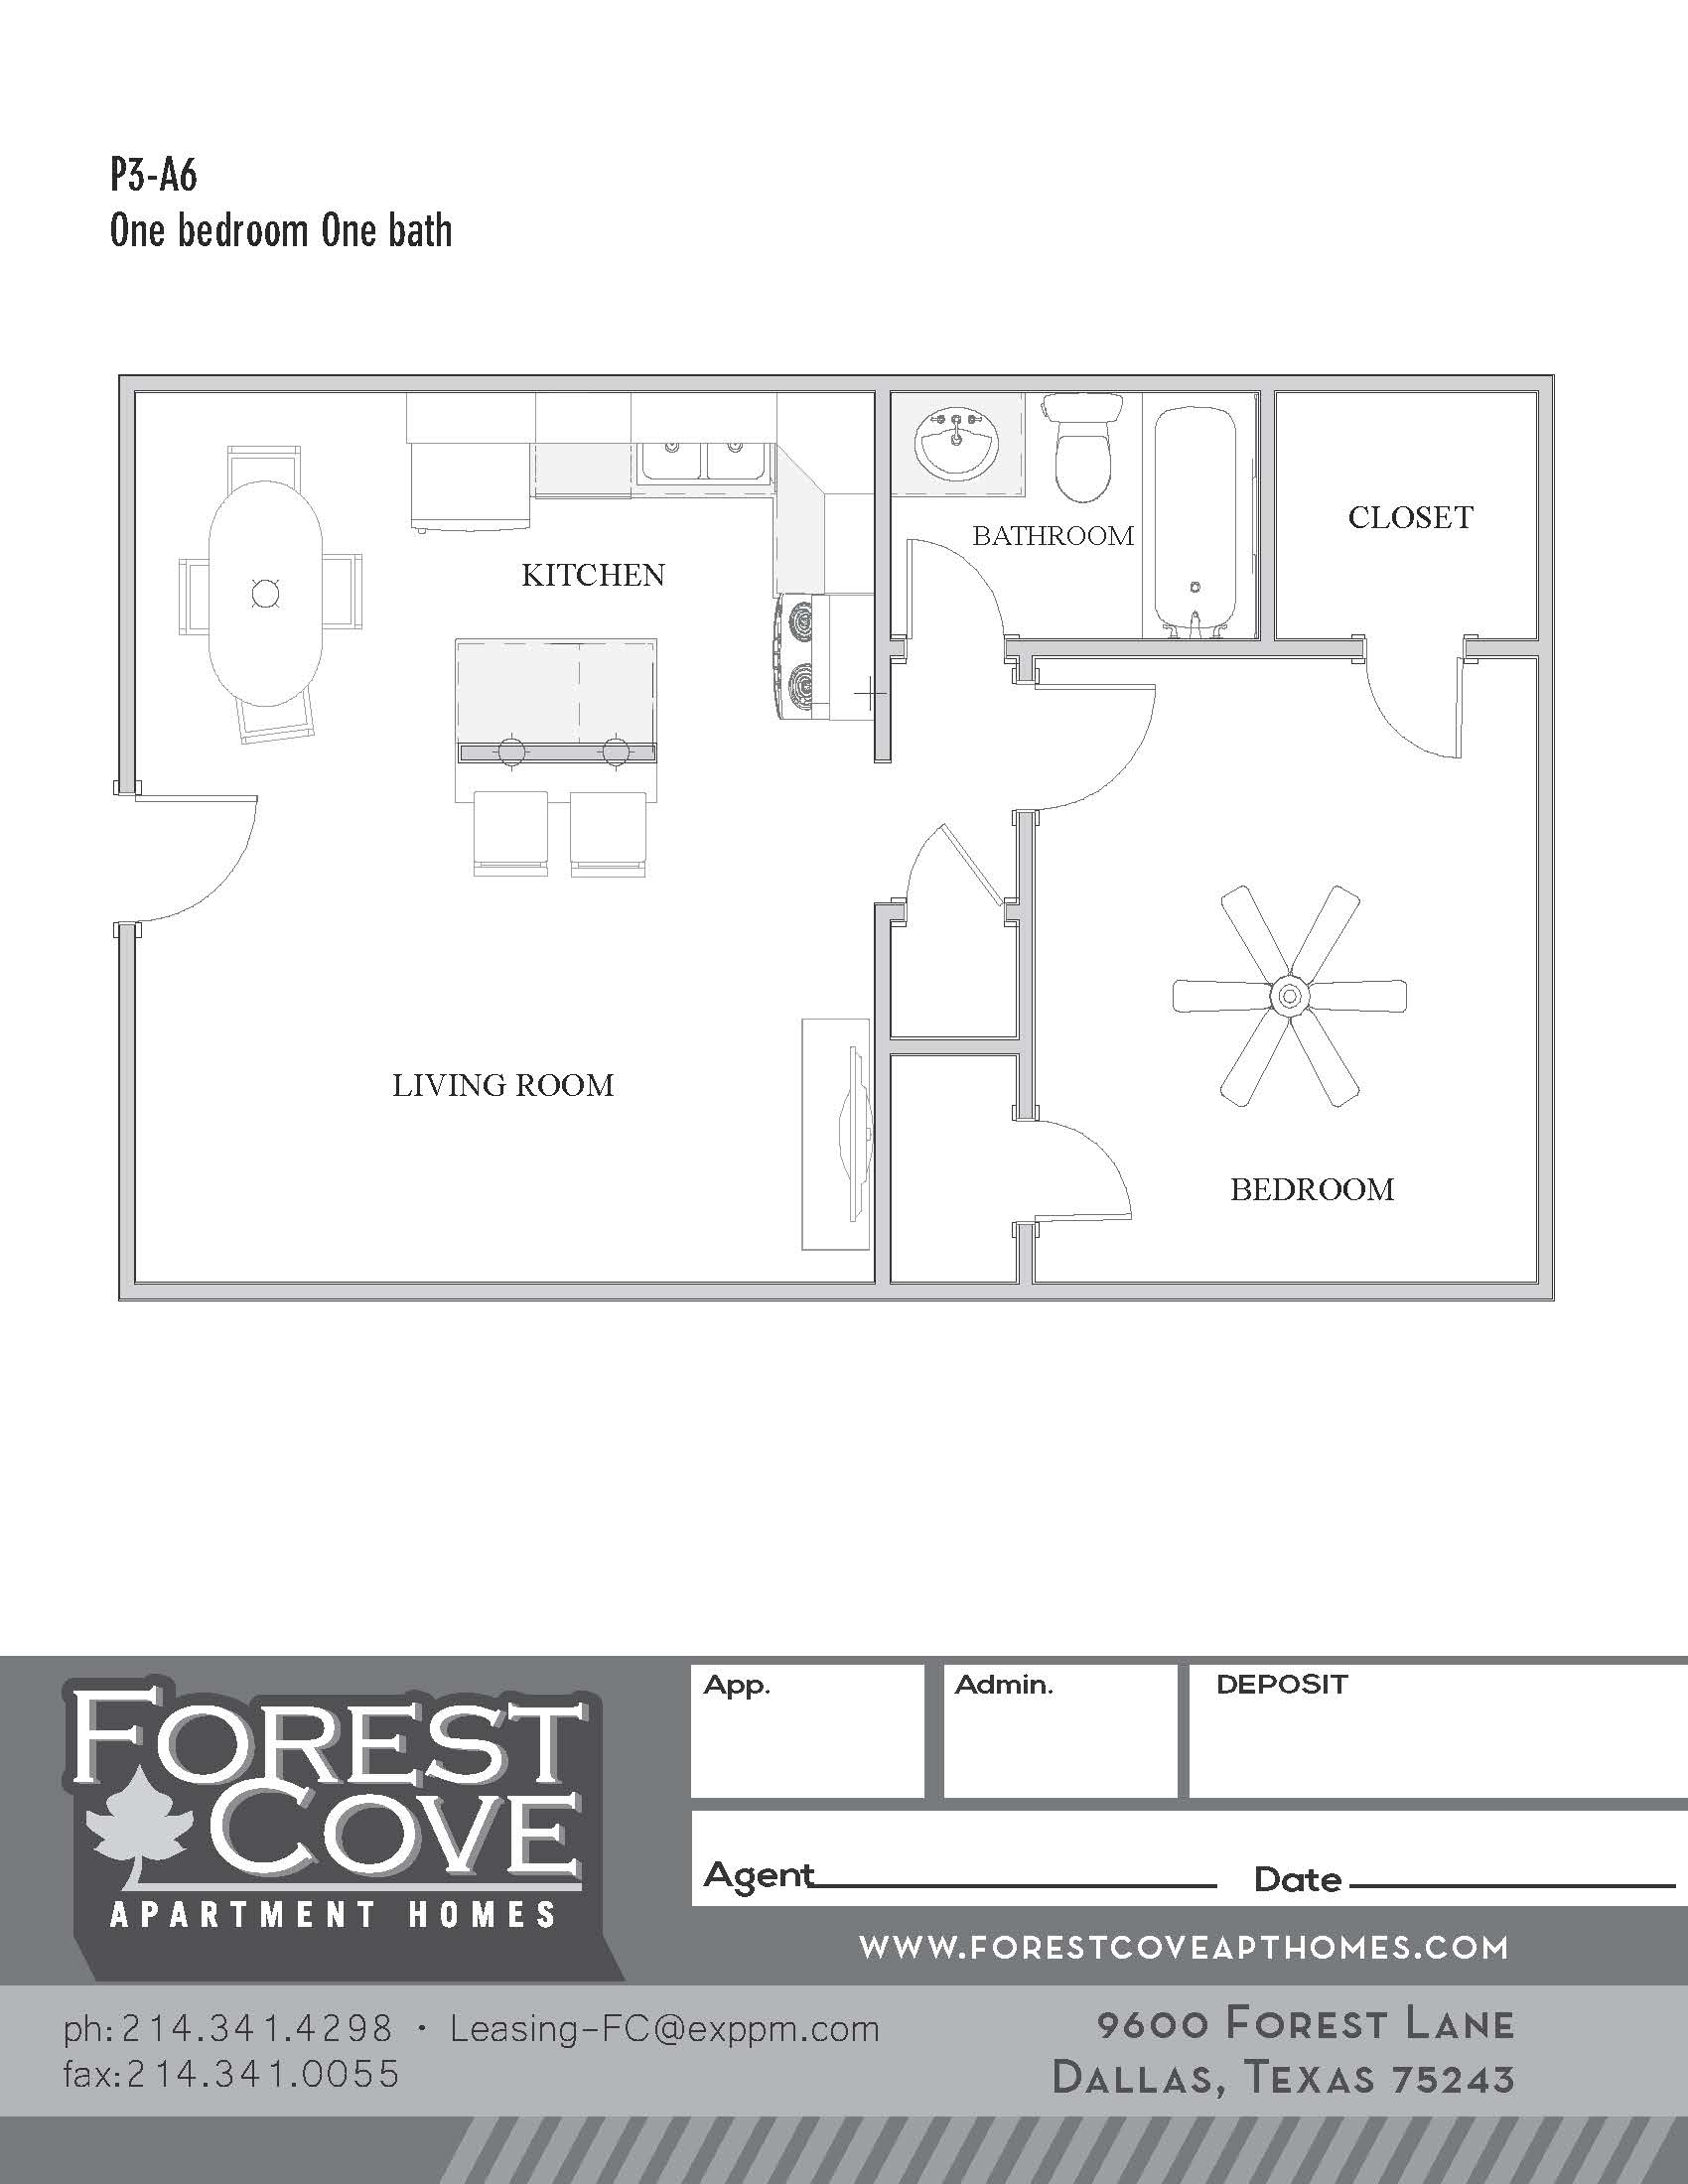 Forest Cove Apartments - Floorplan - 3-A6